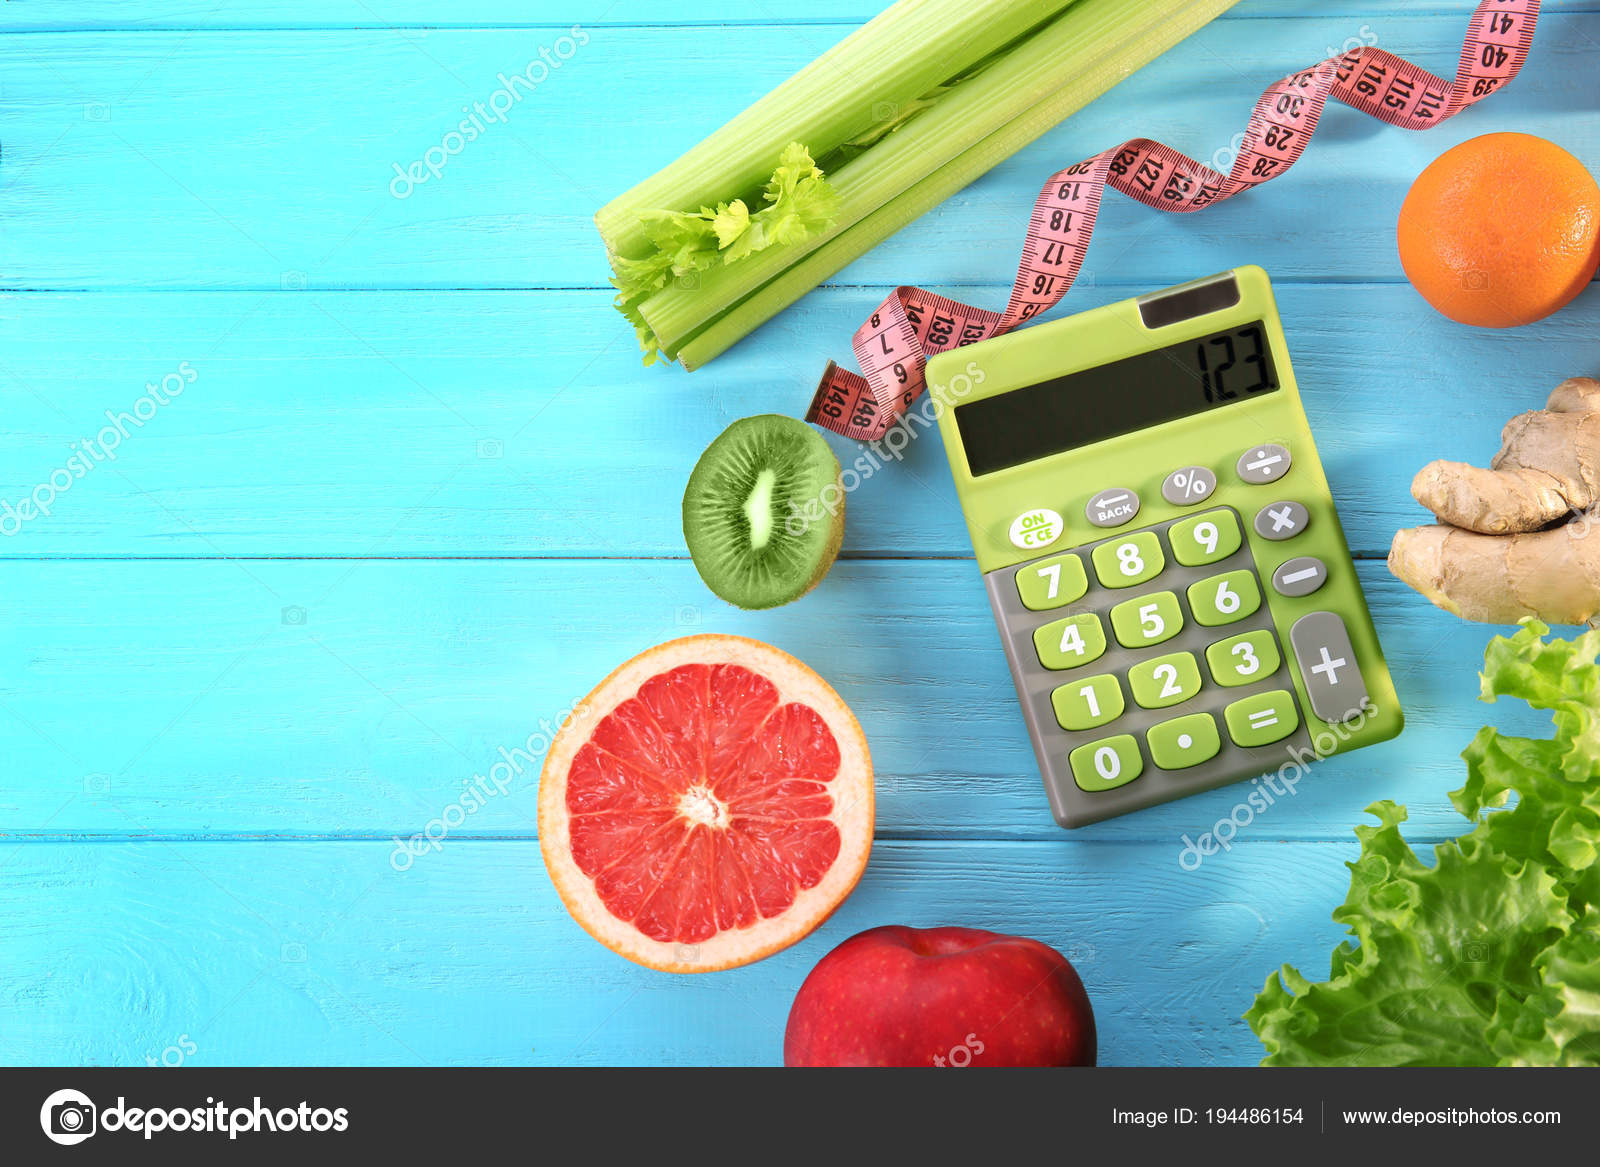 calculator measuring tape and different groceries stock photo